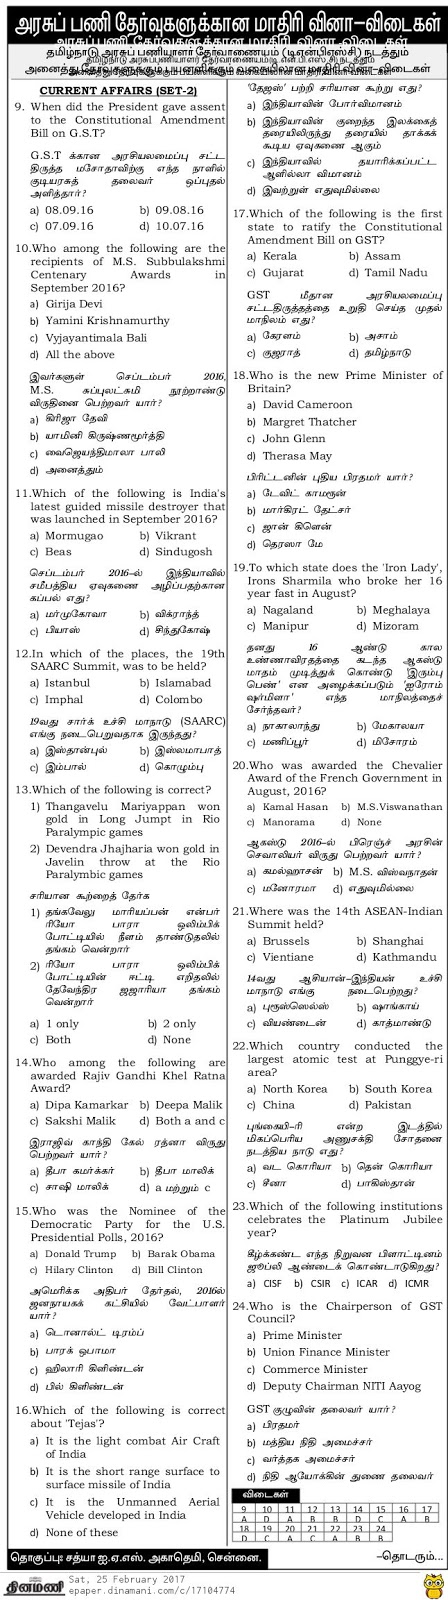 TNPSC Current Affairs Questions and Answers: 25 02 2017 (Dinamani) PDF